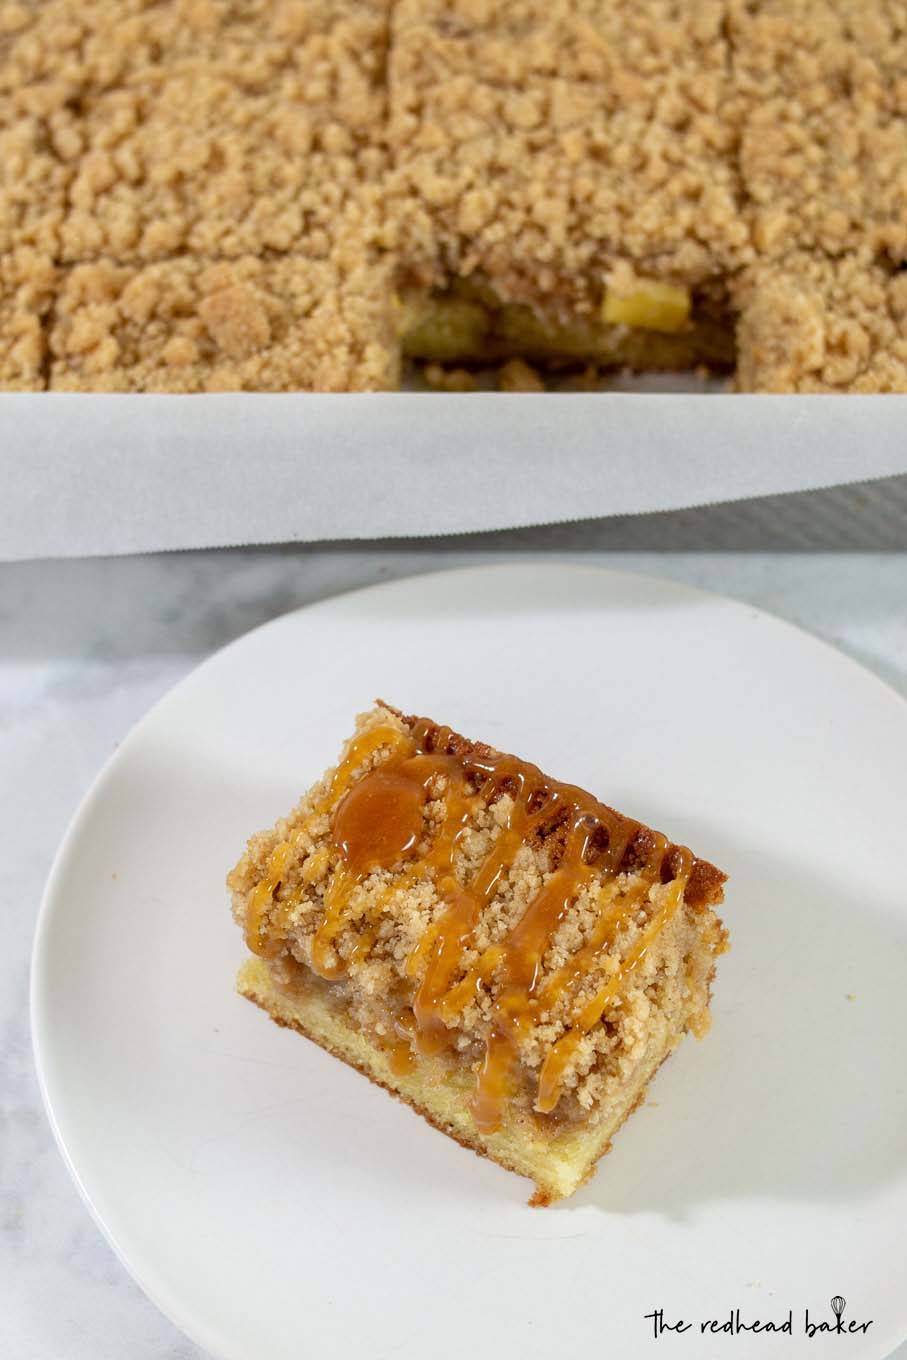 A slice of caramel apple crumb cake in front of a cake pan of crumb cake